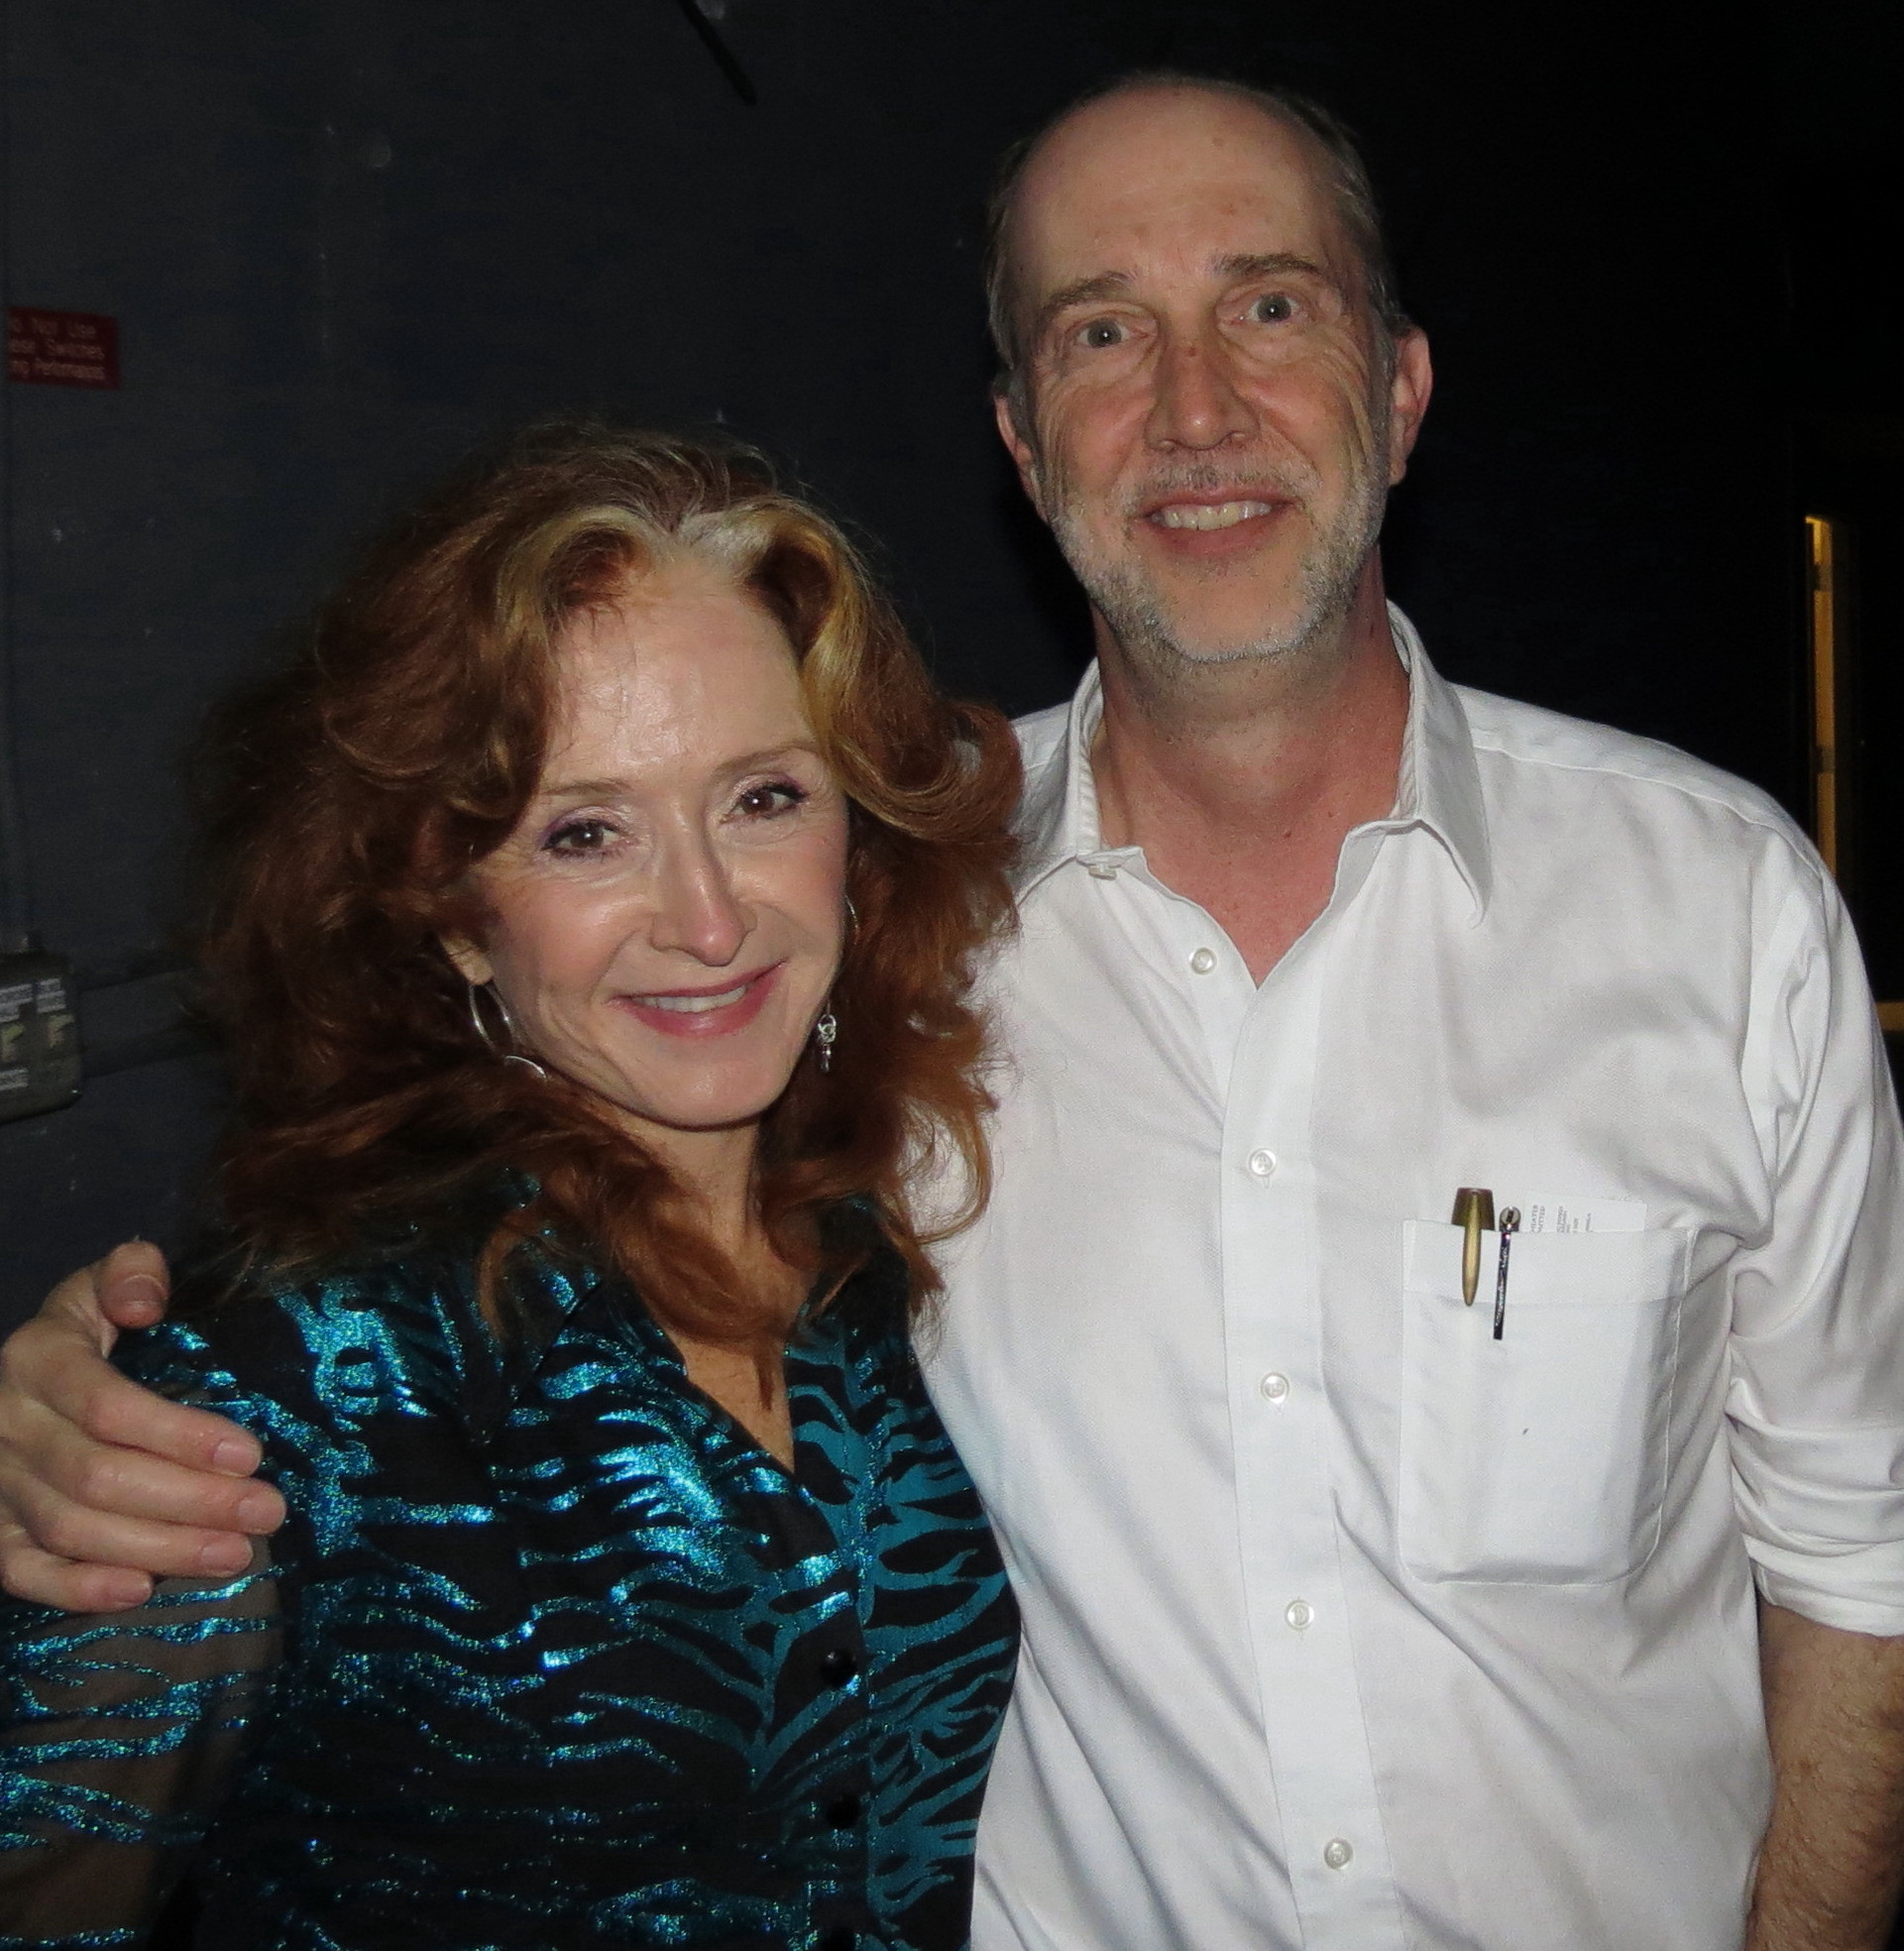 Caption: Bonnie Raitt with show host Paul Ingles